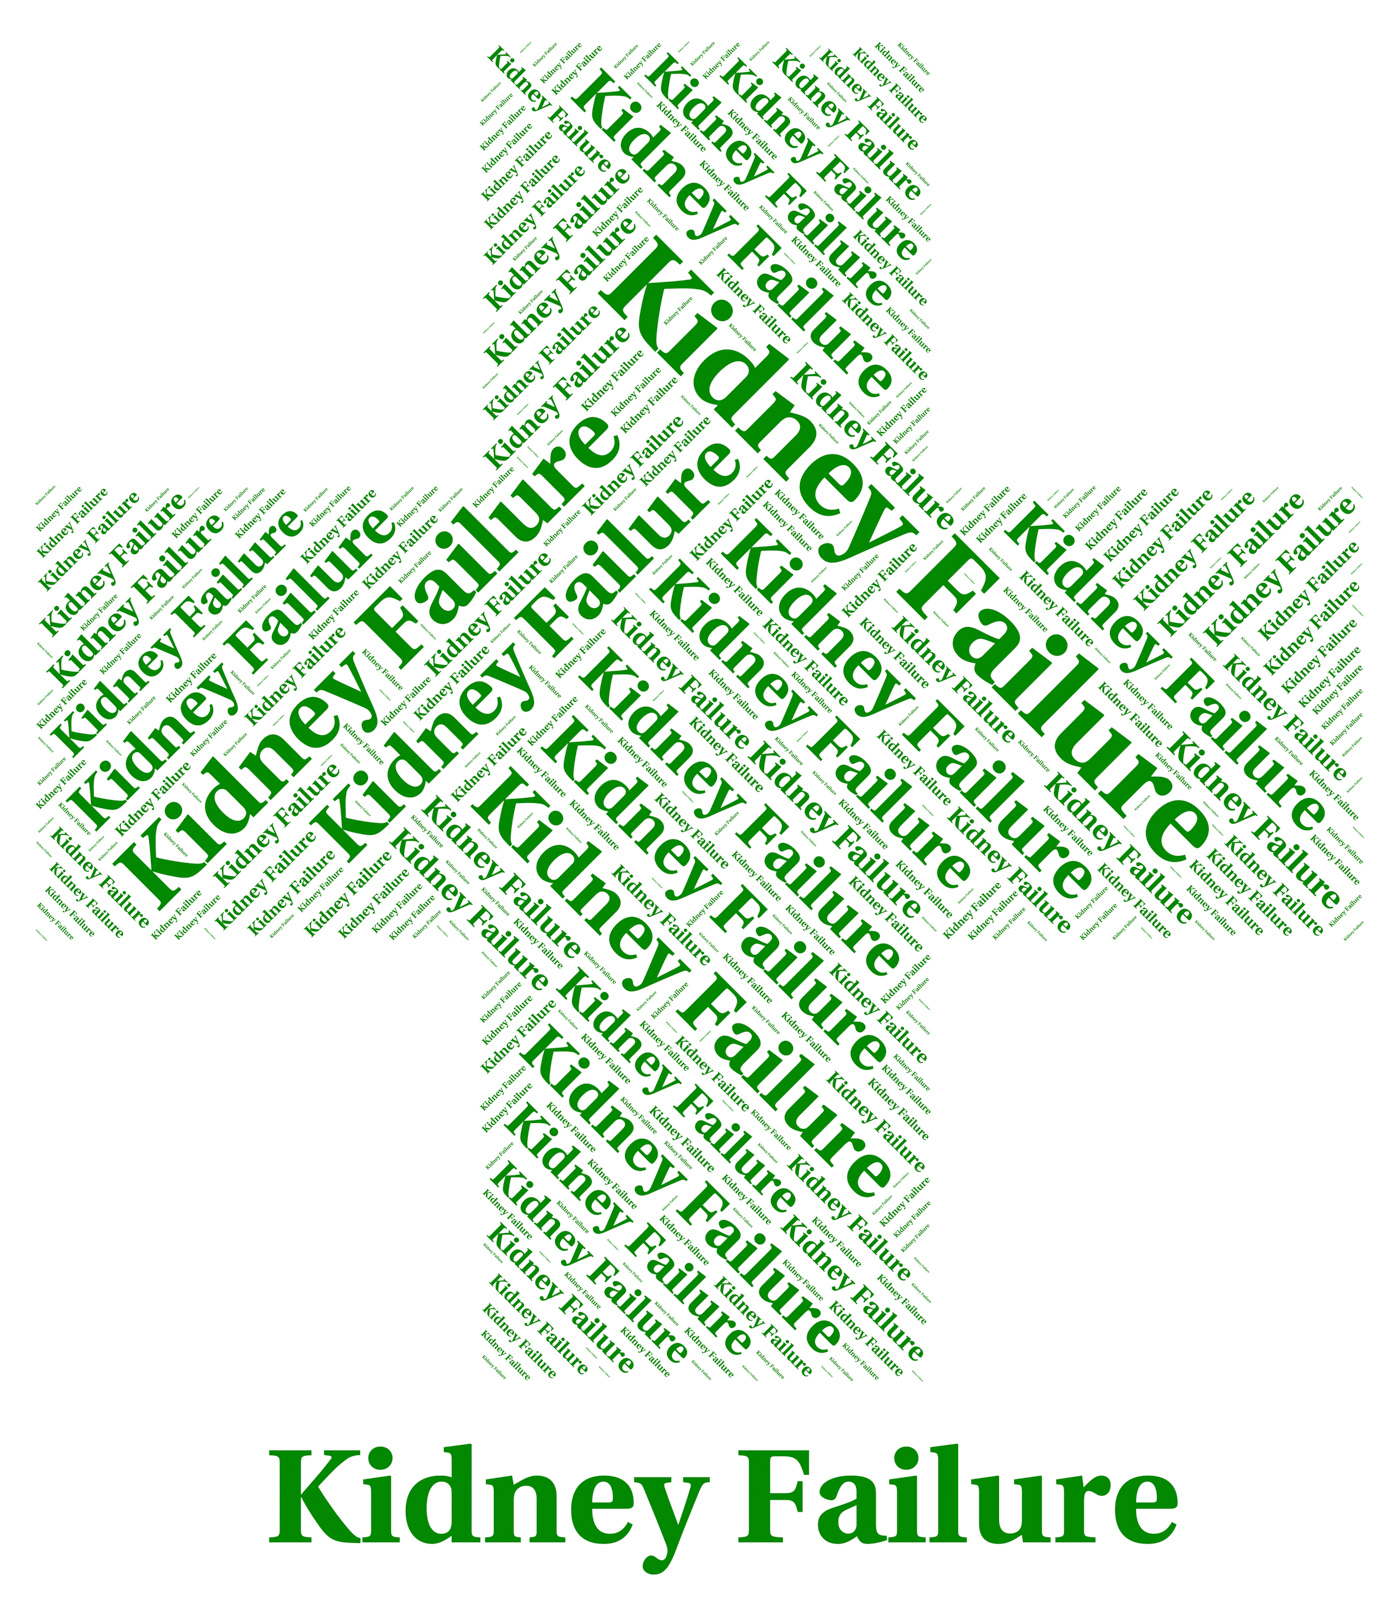 Kidney failure shows lack of success and affliction photo